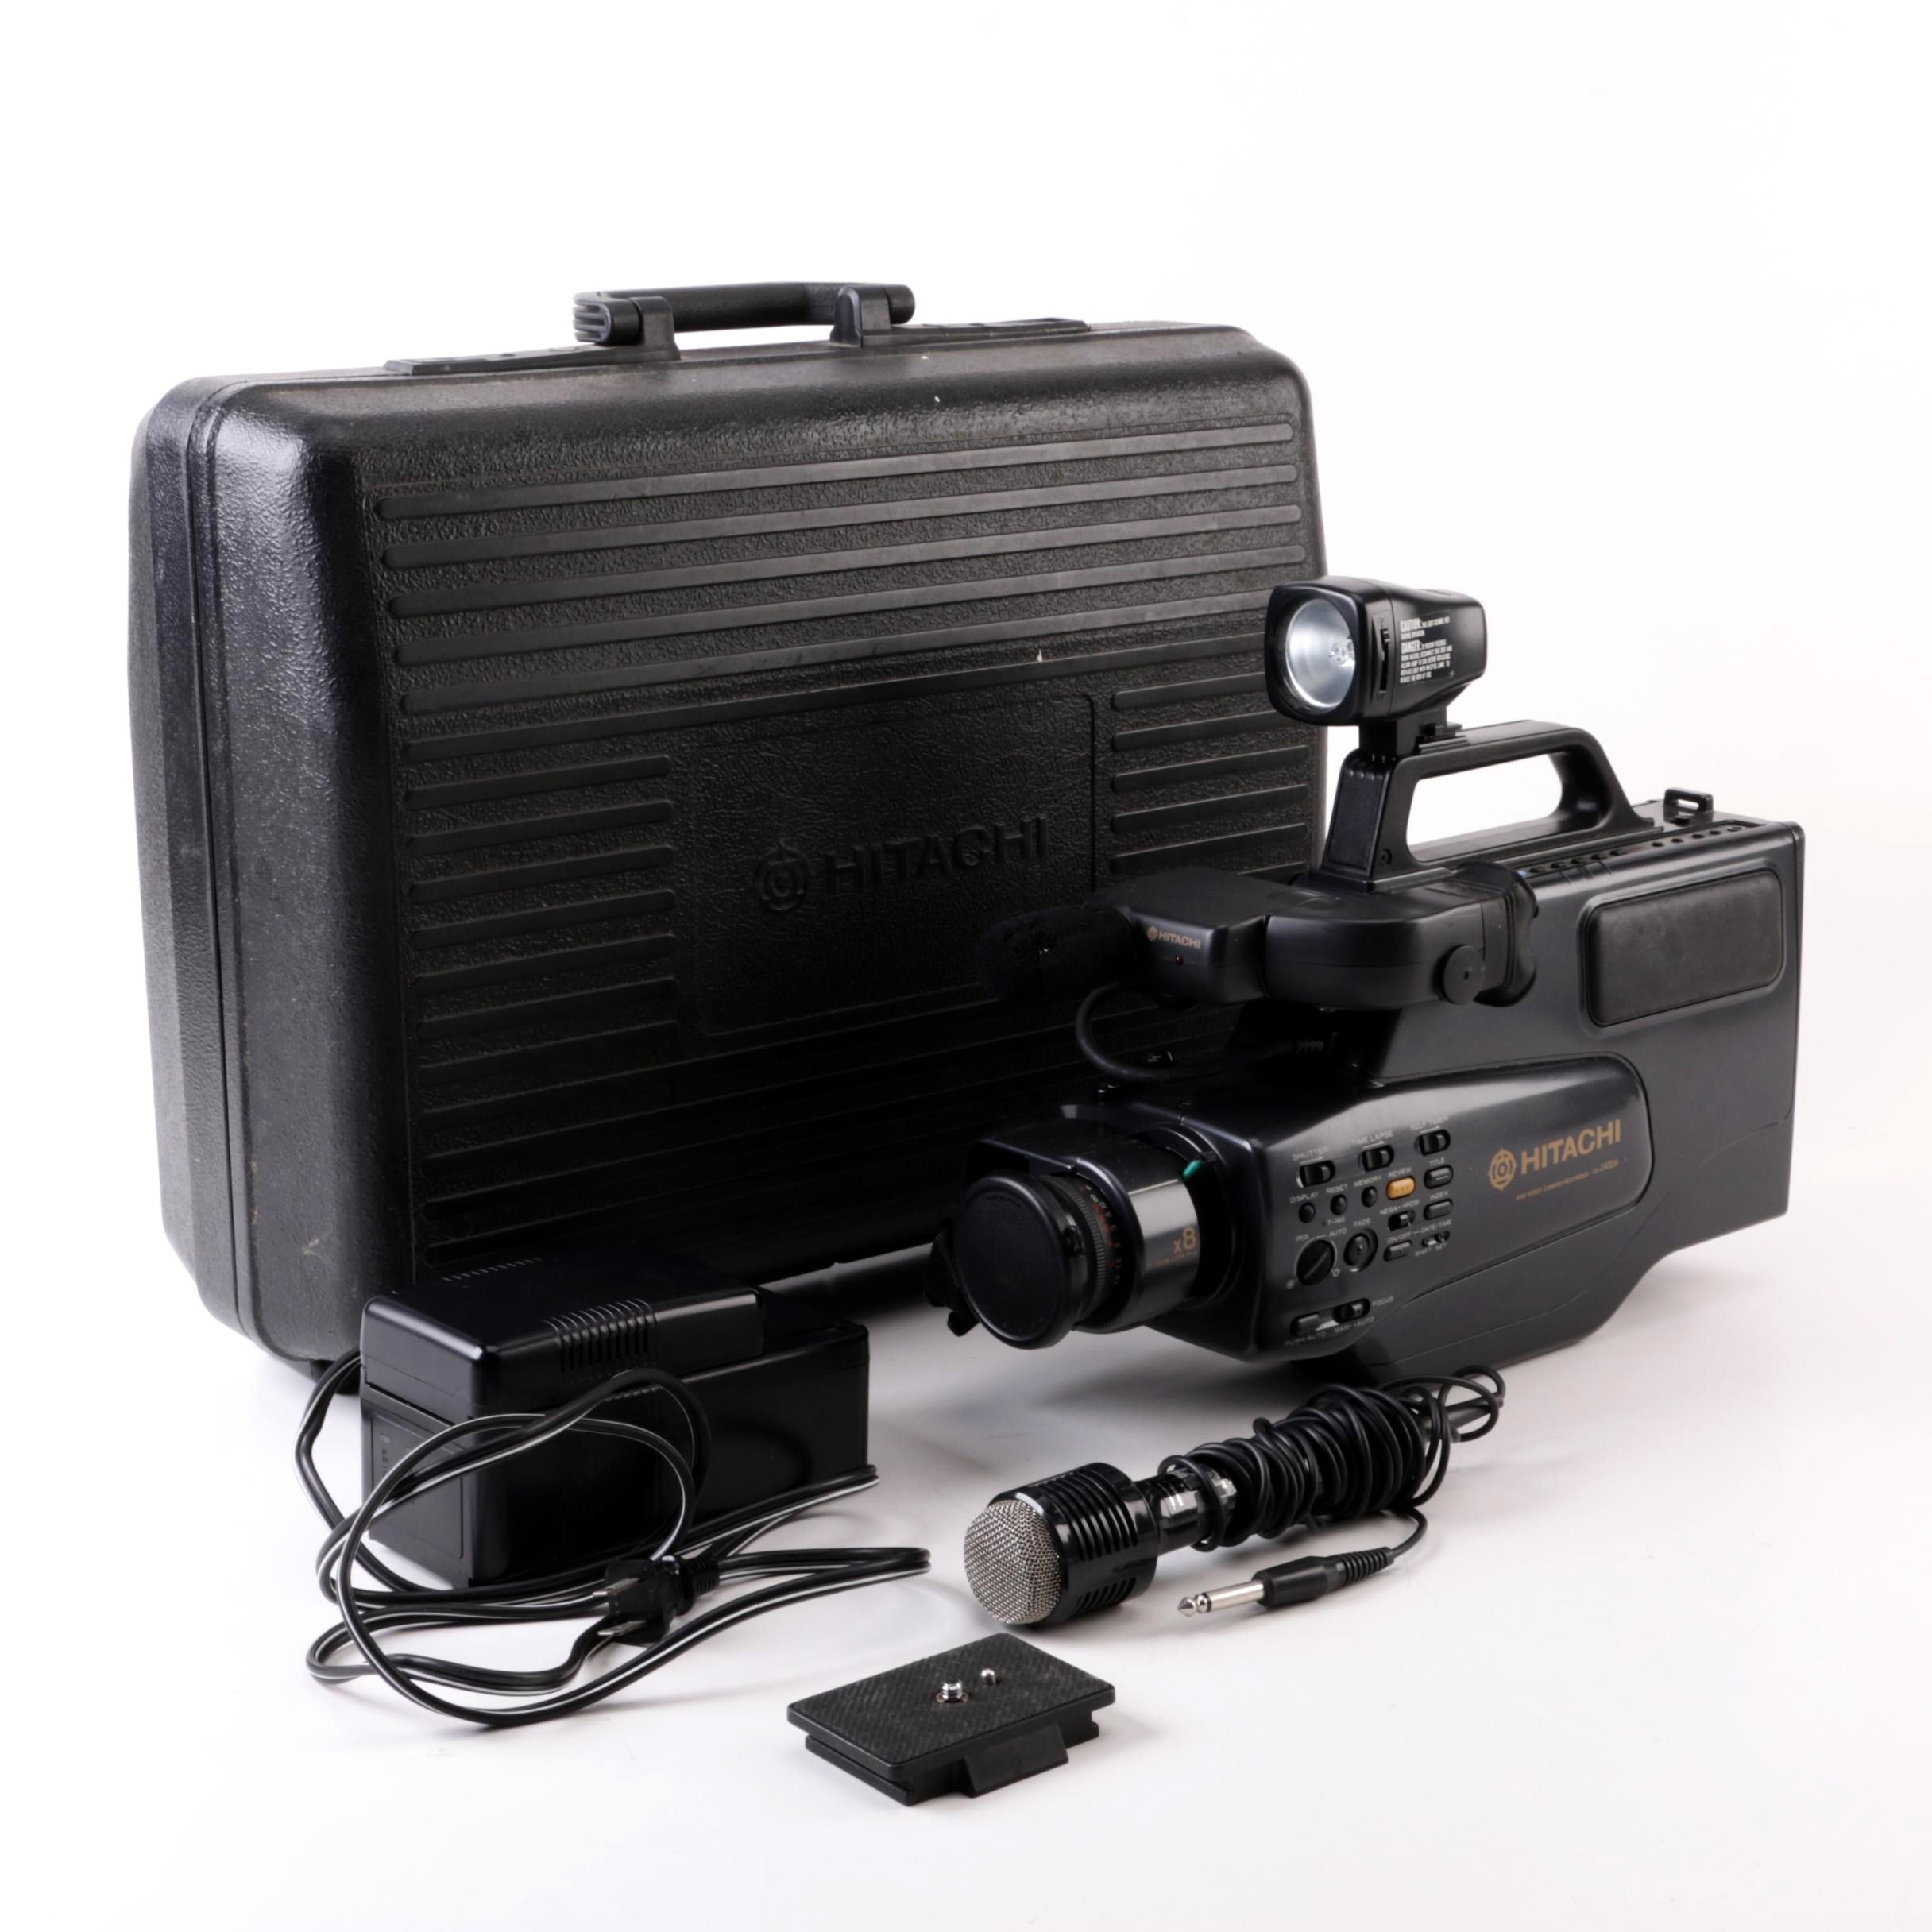 Hitachi VM-2400A VHS Camcorder with Case and Accessories